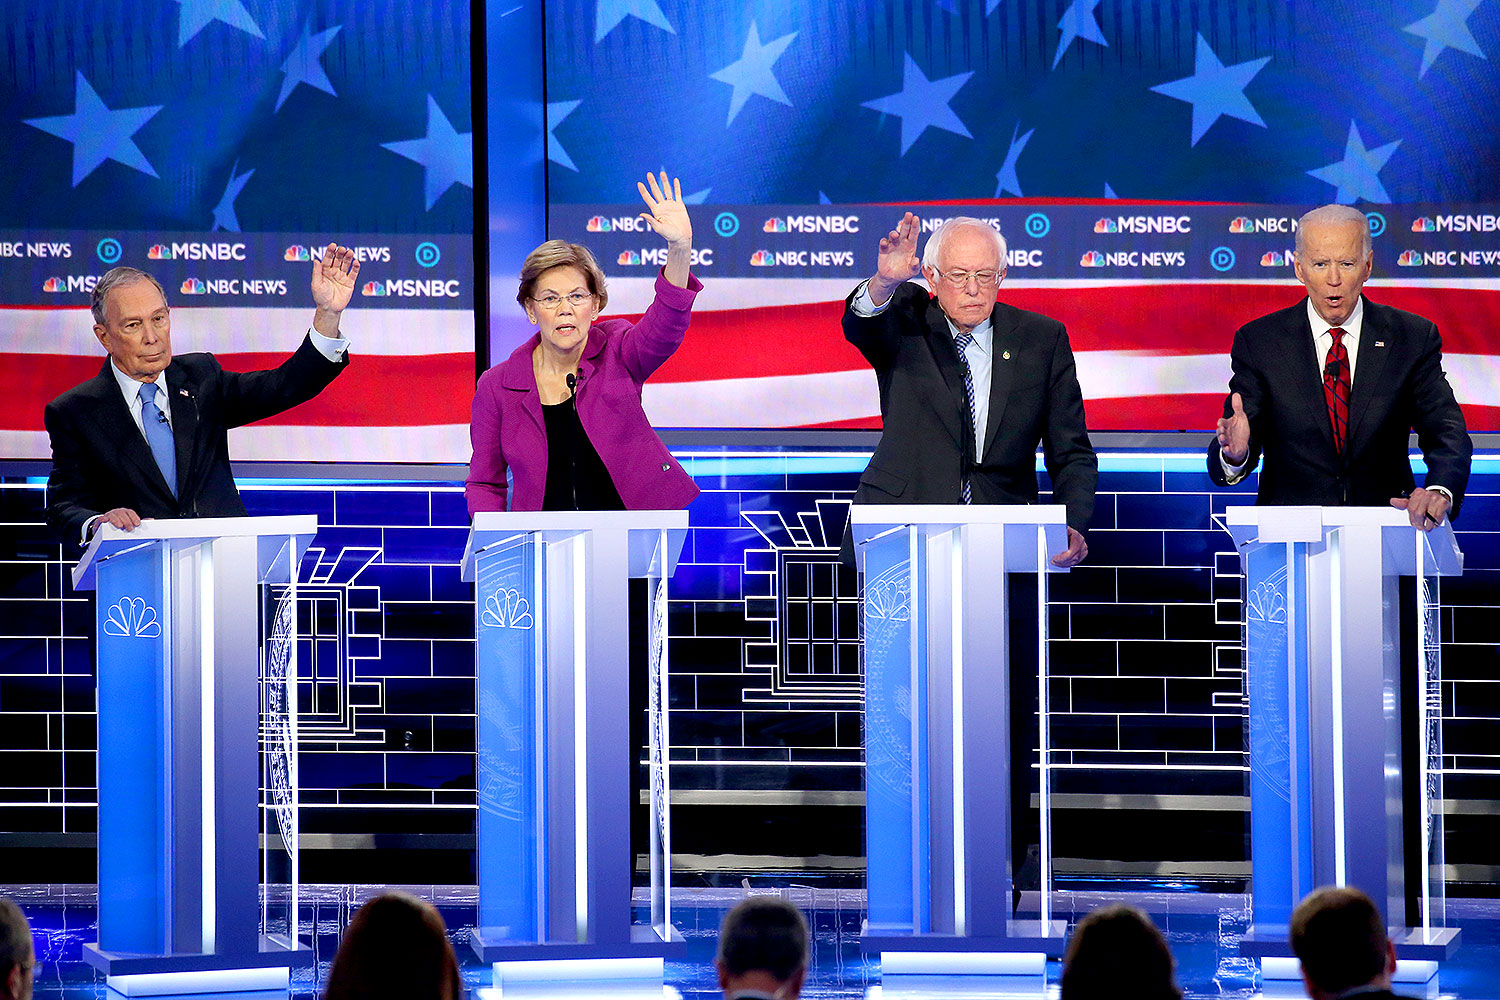 Mike Bloomberg, Sen. Elizabeth Warren (D-MA) and Sen. Bernie Sanders (I-VT) raise their hands as former Vice President Joe Biden